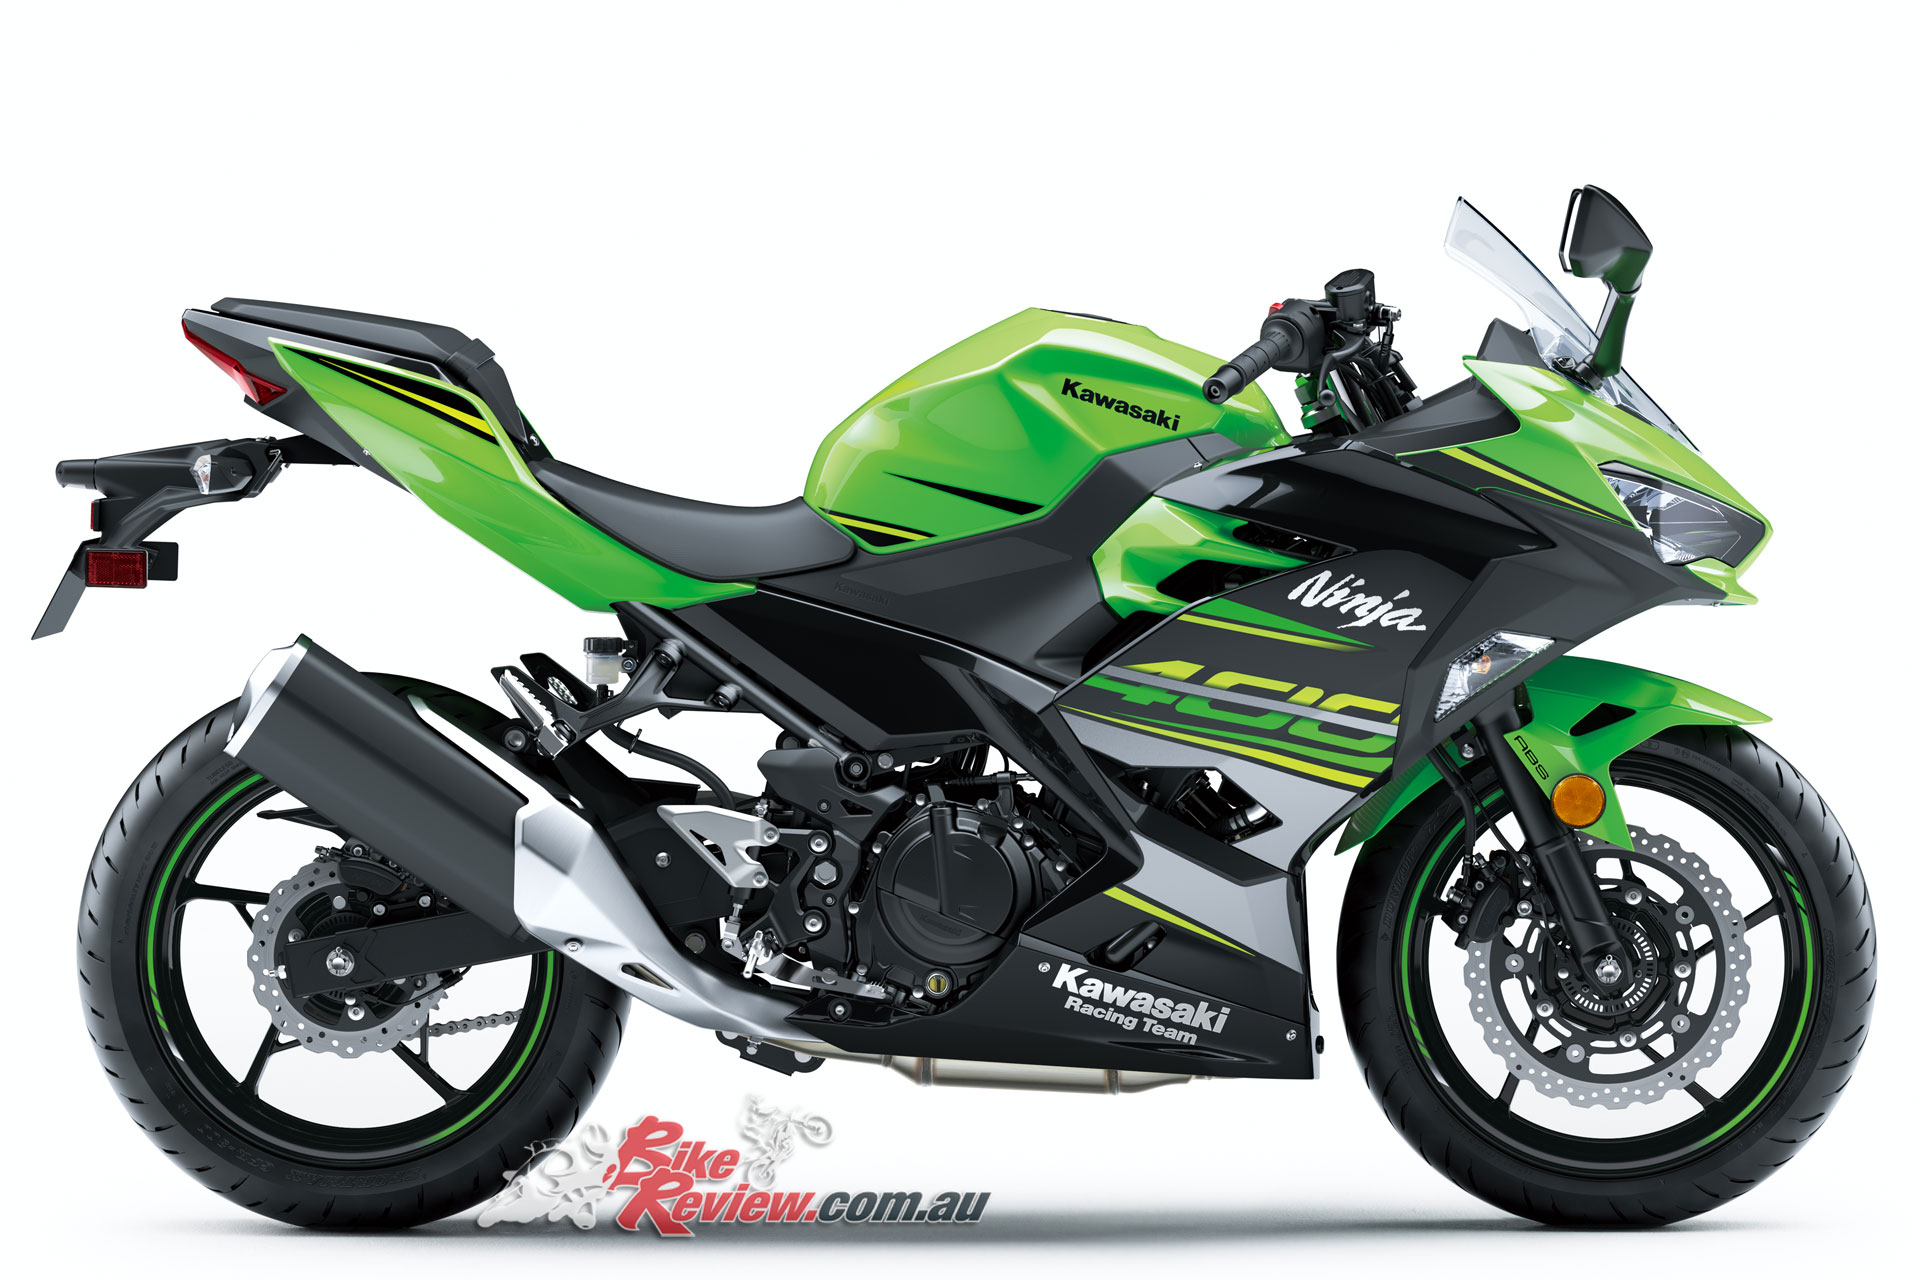 kawasaki unveil ninja h2 sx ninja 400 z900rs at eicma bike review. Black Bedroom Furniture Sets. Home Design Ideas